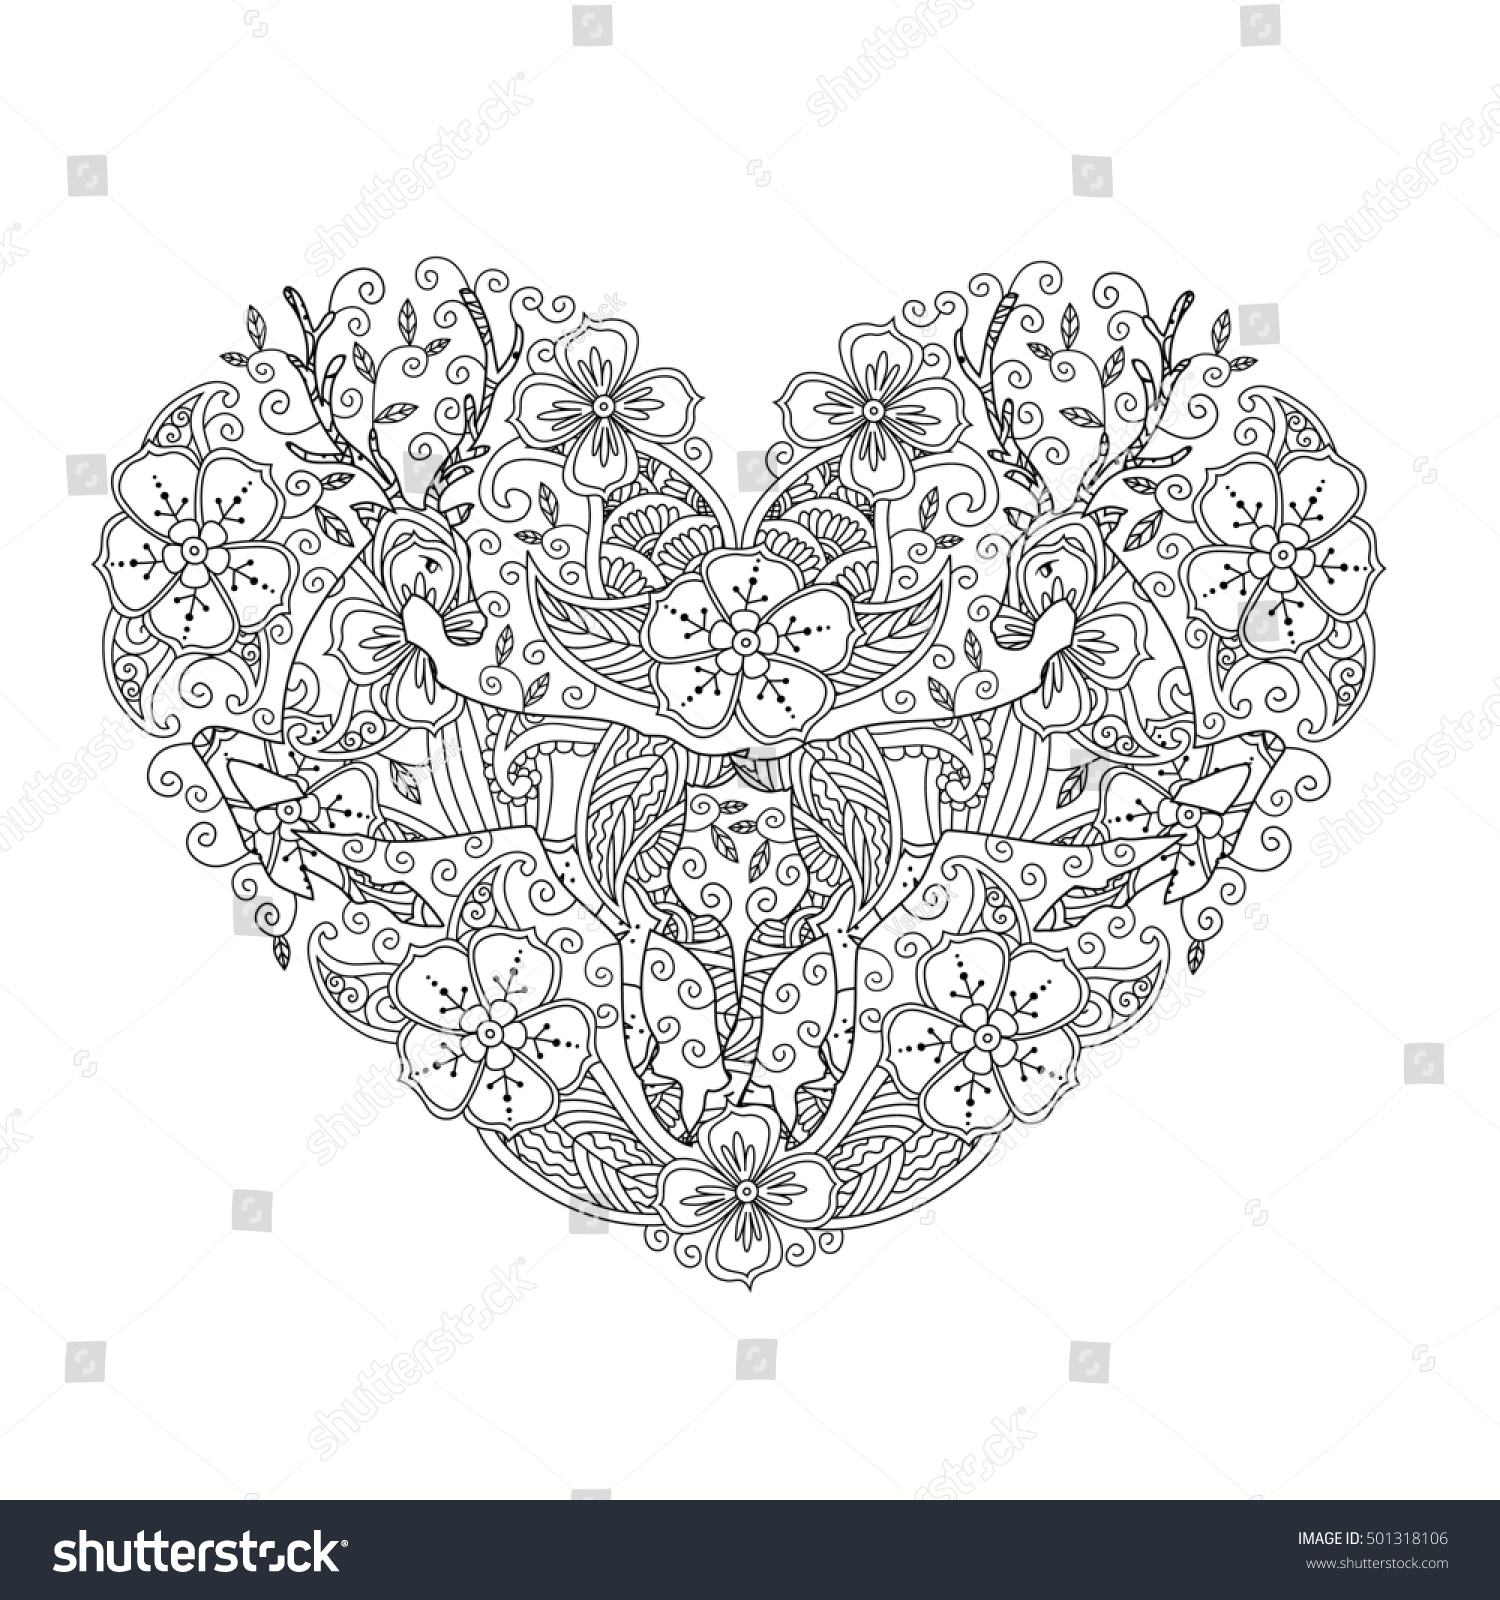 Coloring Page Running Deer Heart Love Stock Illustration 501318106 ...